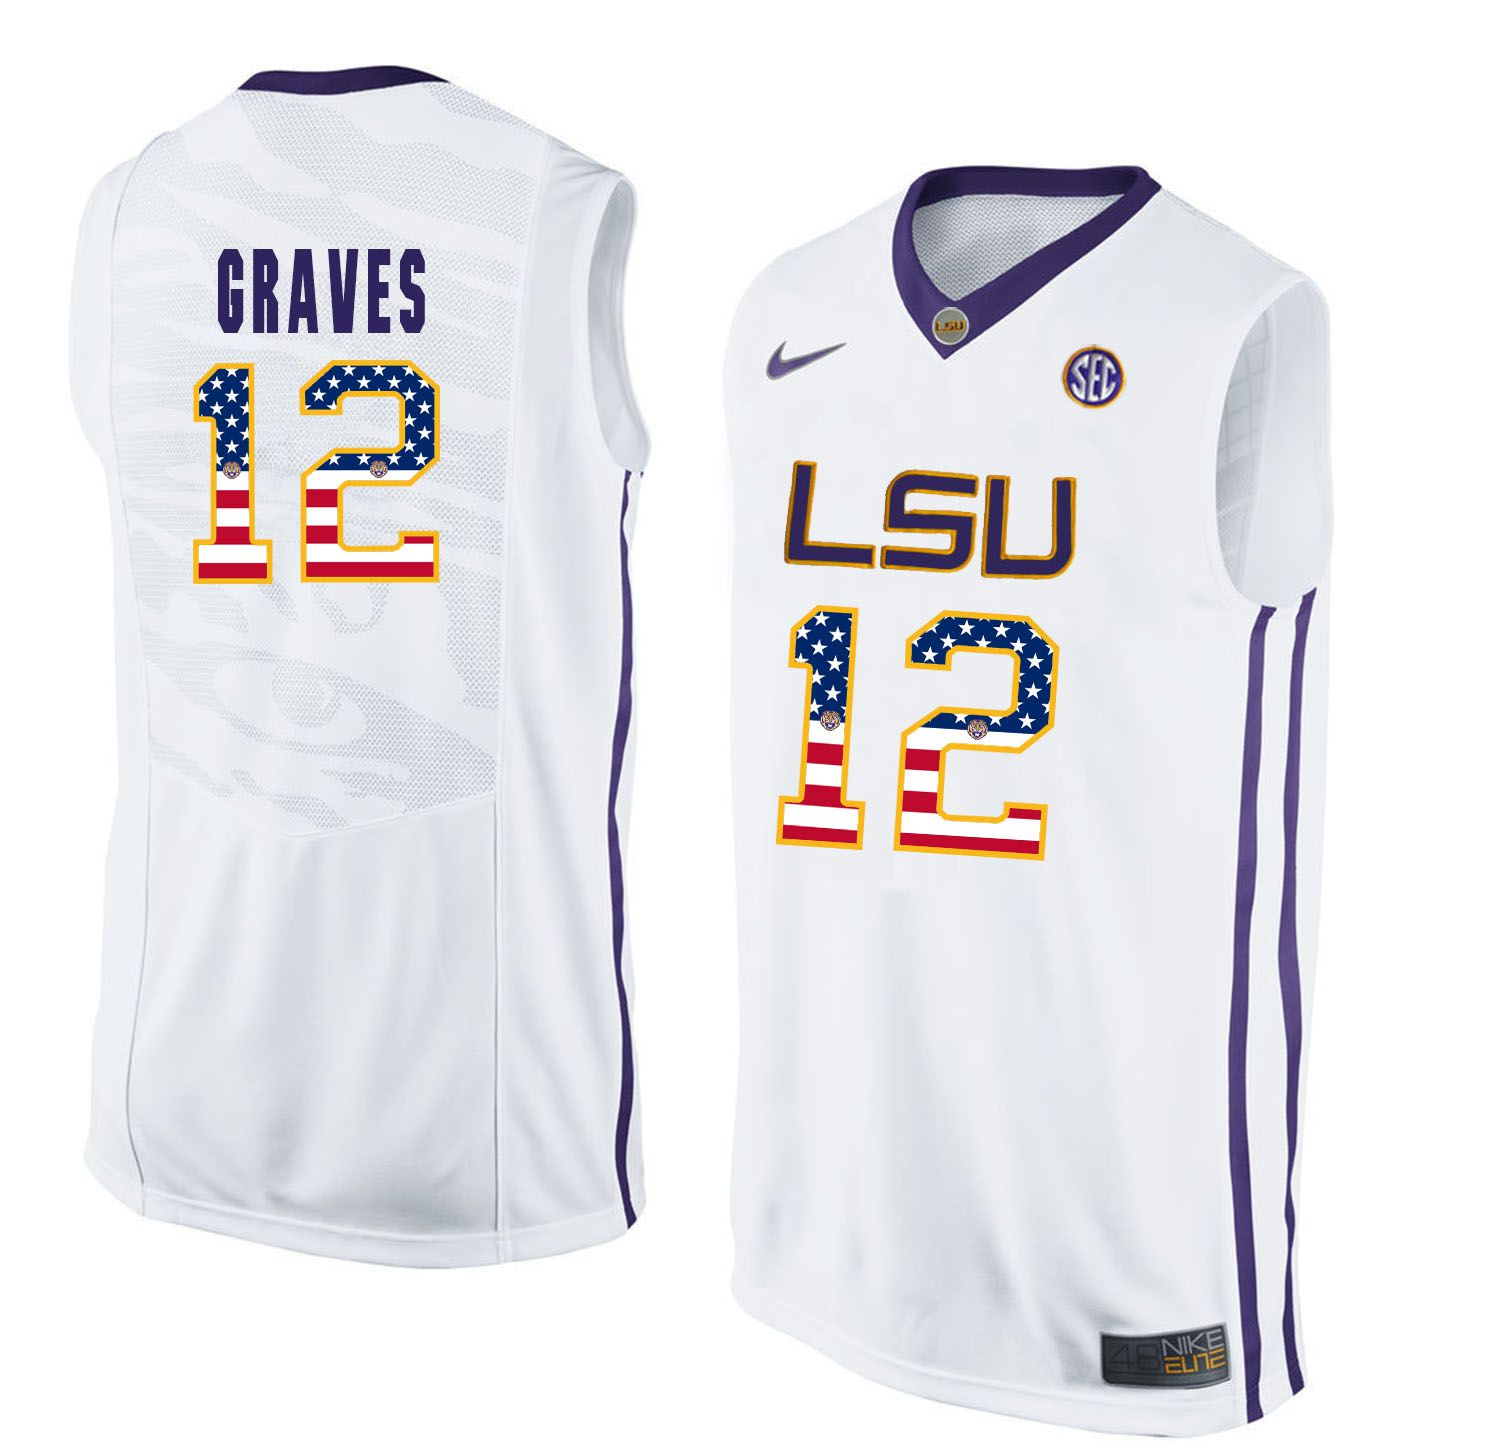 Men LSU Tigers 12 Graves White Flag Customized NCAA Jerseys